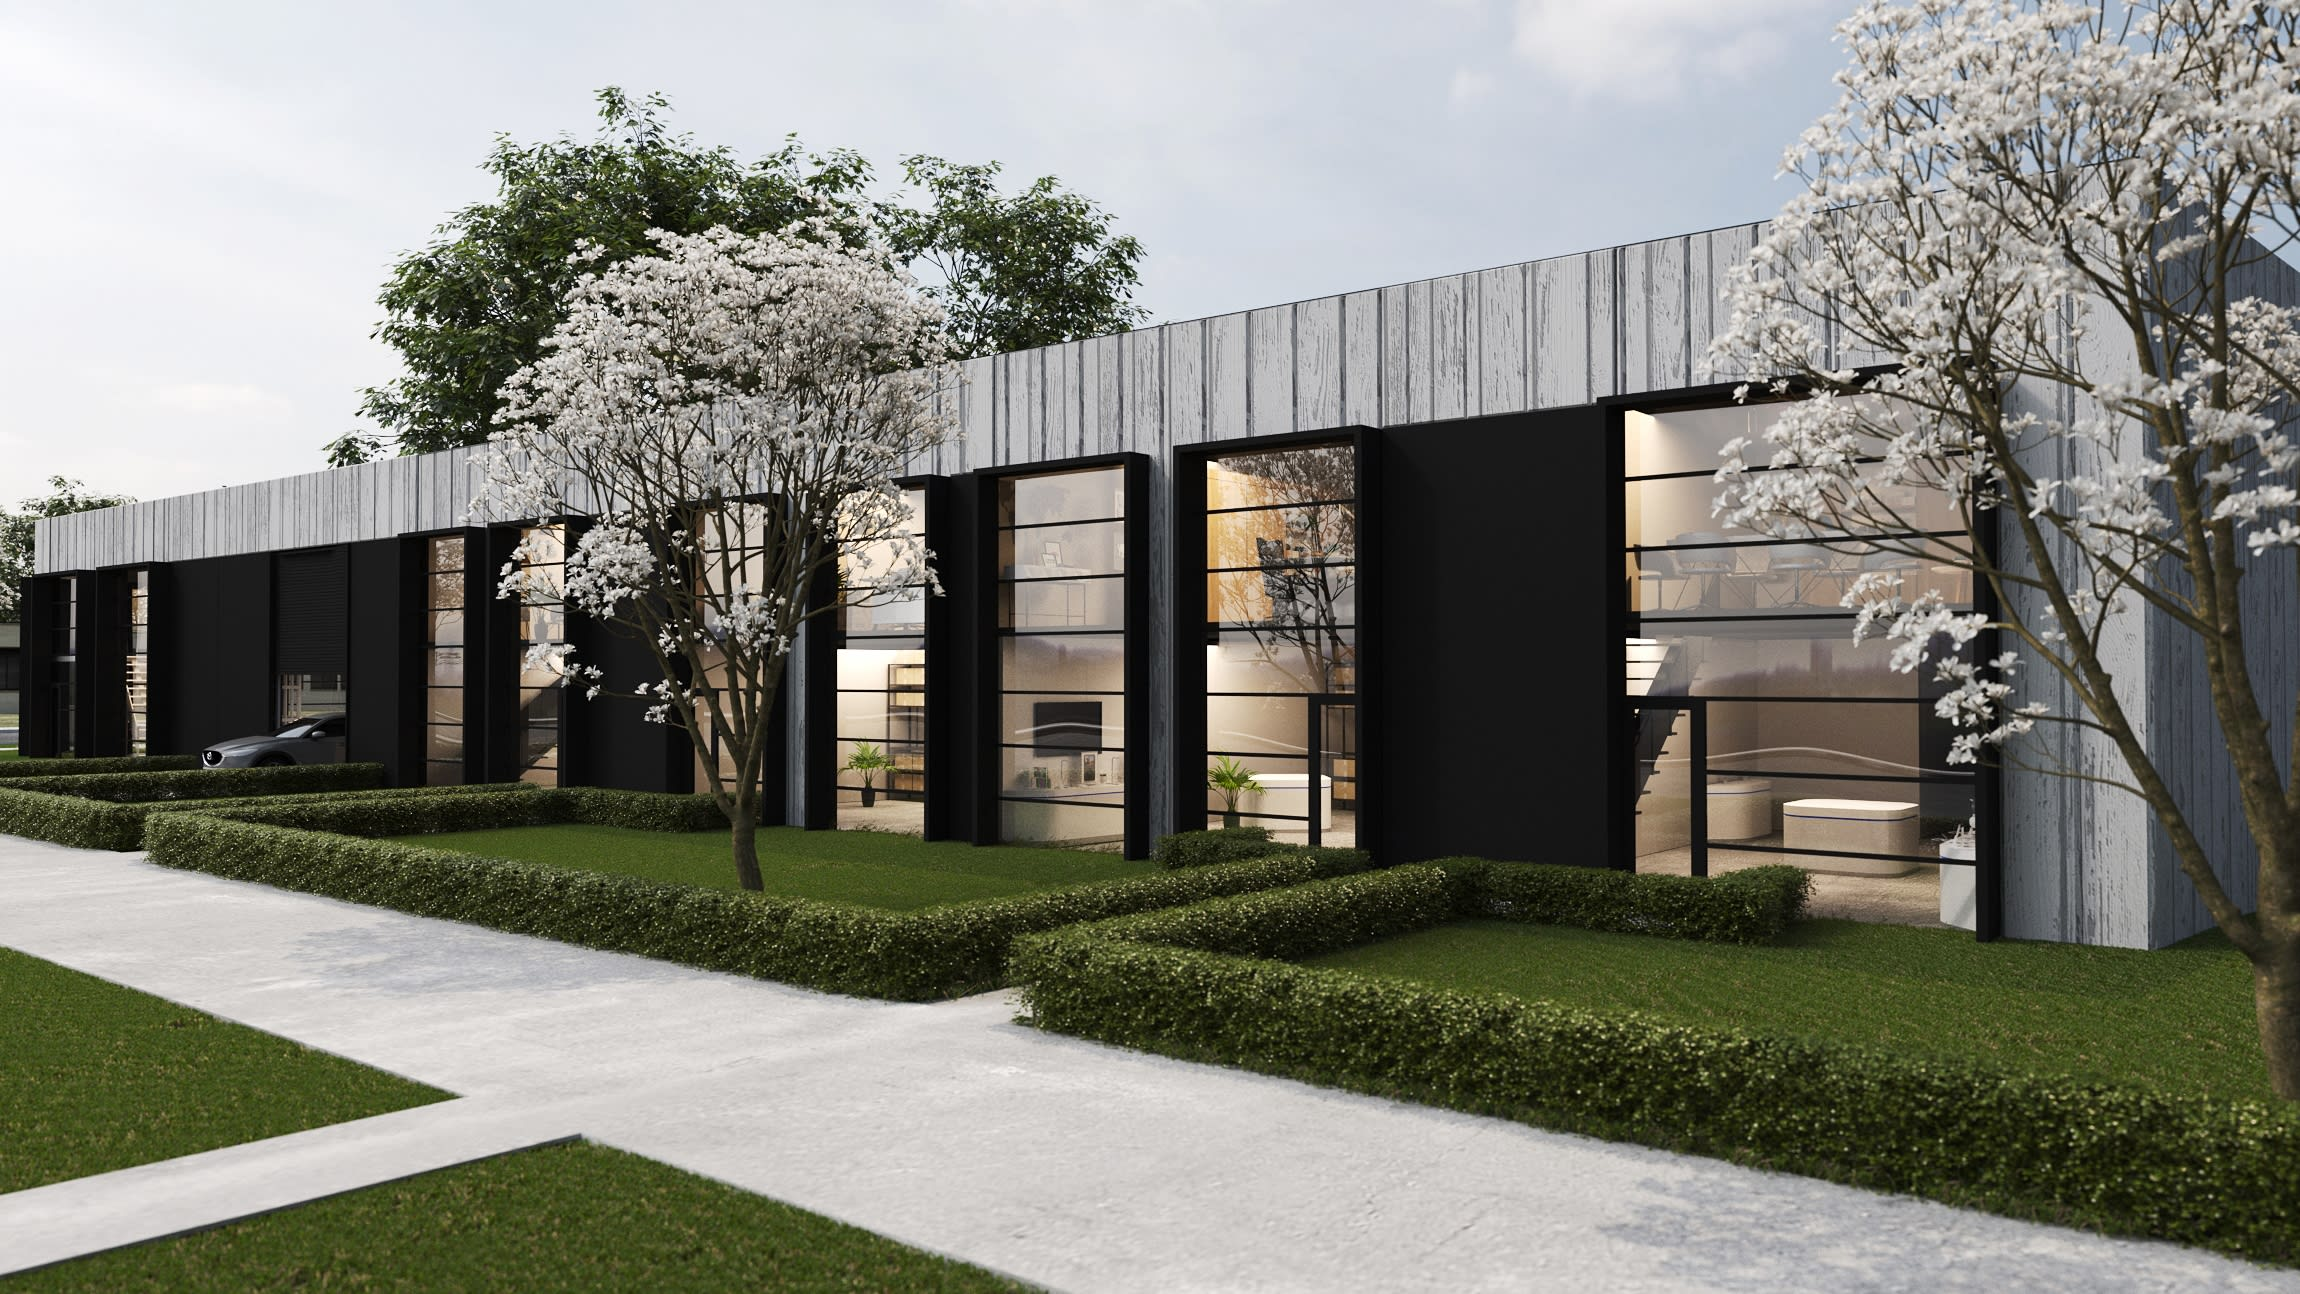 The Atlantic Business Park - Photorealistic Render From Cylinders Dr